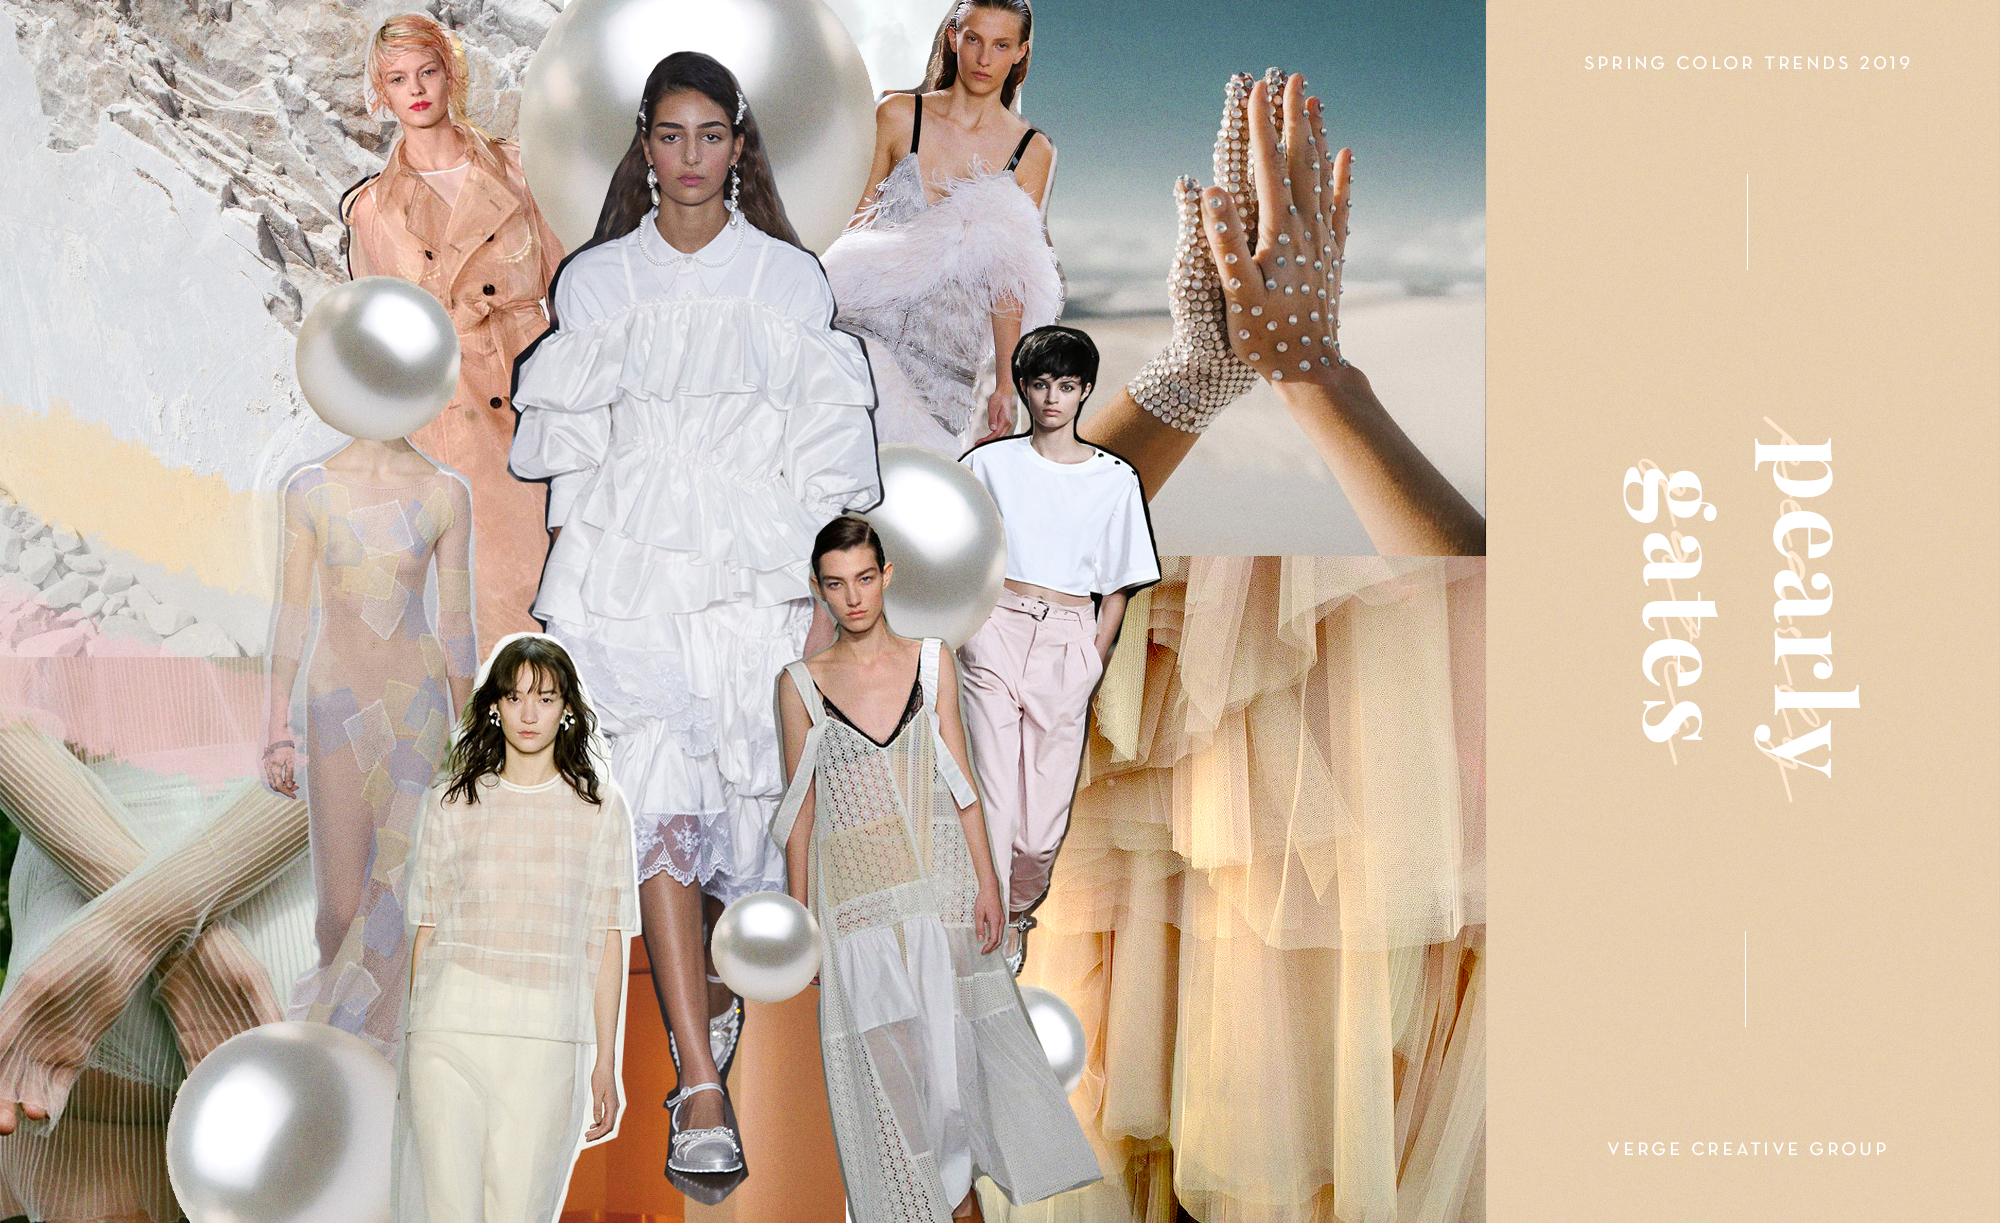 verge-creative-group-spring-color-trends-pearly-gates.jpg